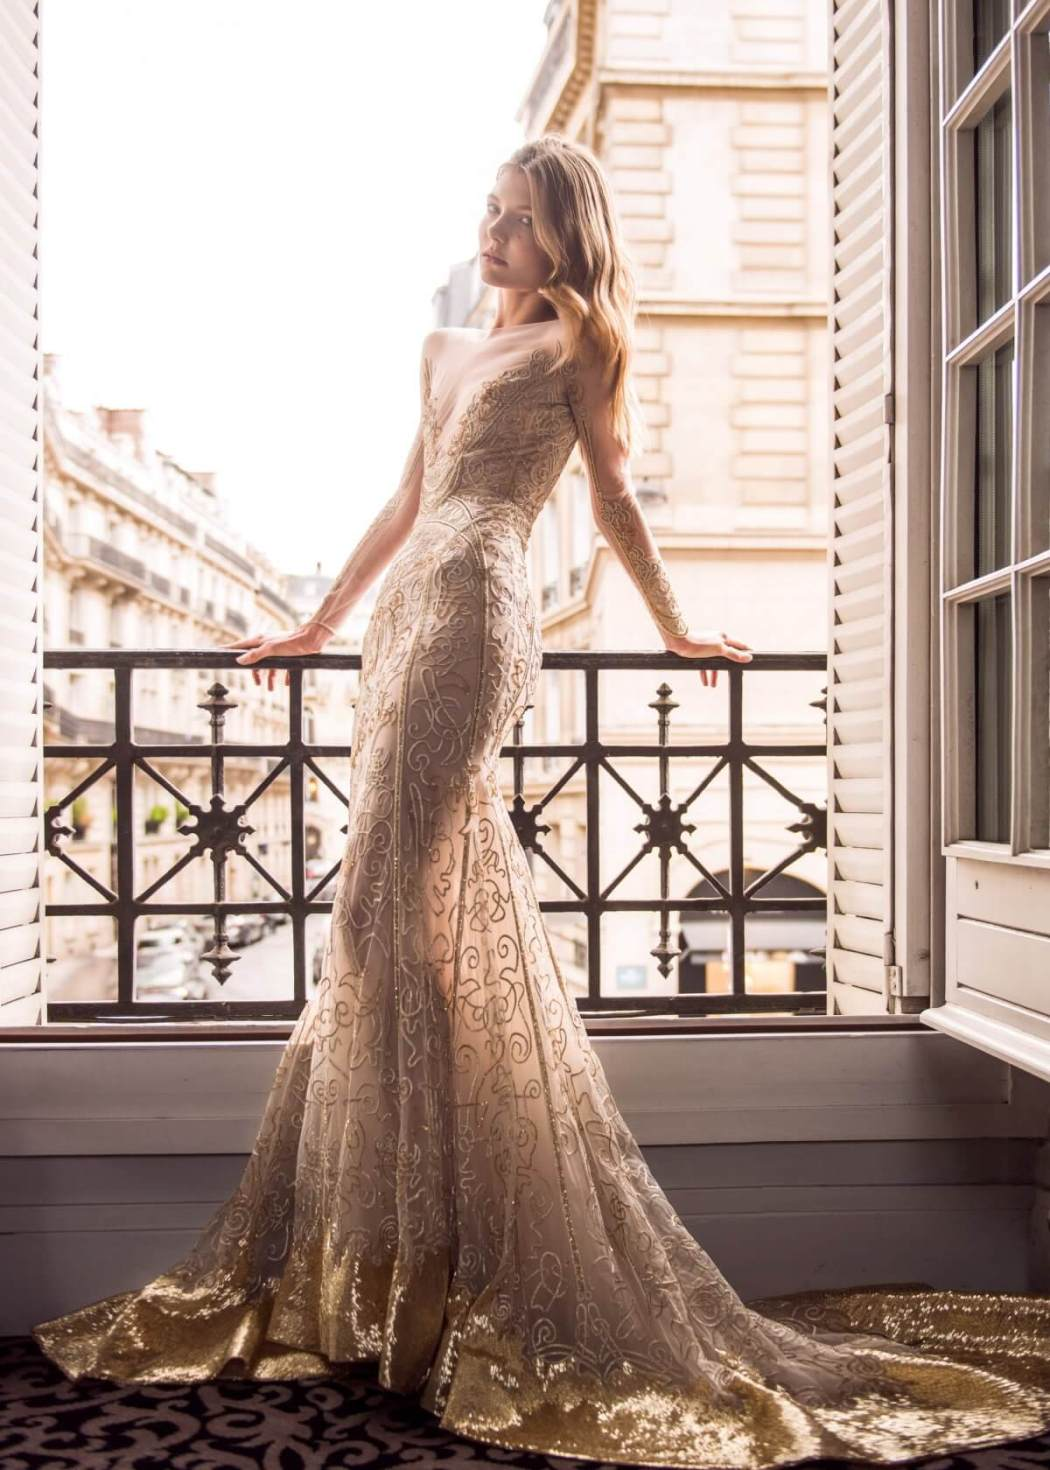 A first look at Paolo Sebastian's 'Reverie'.